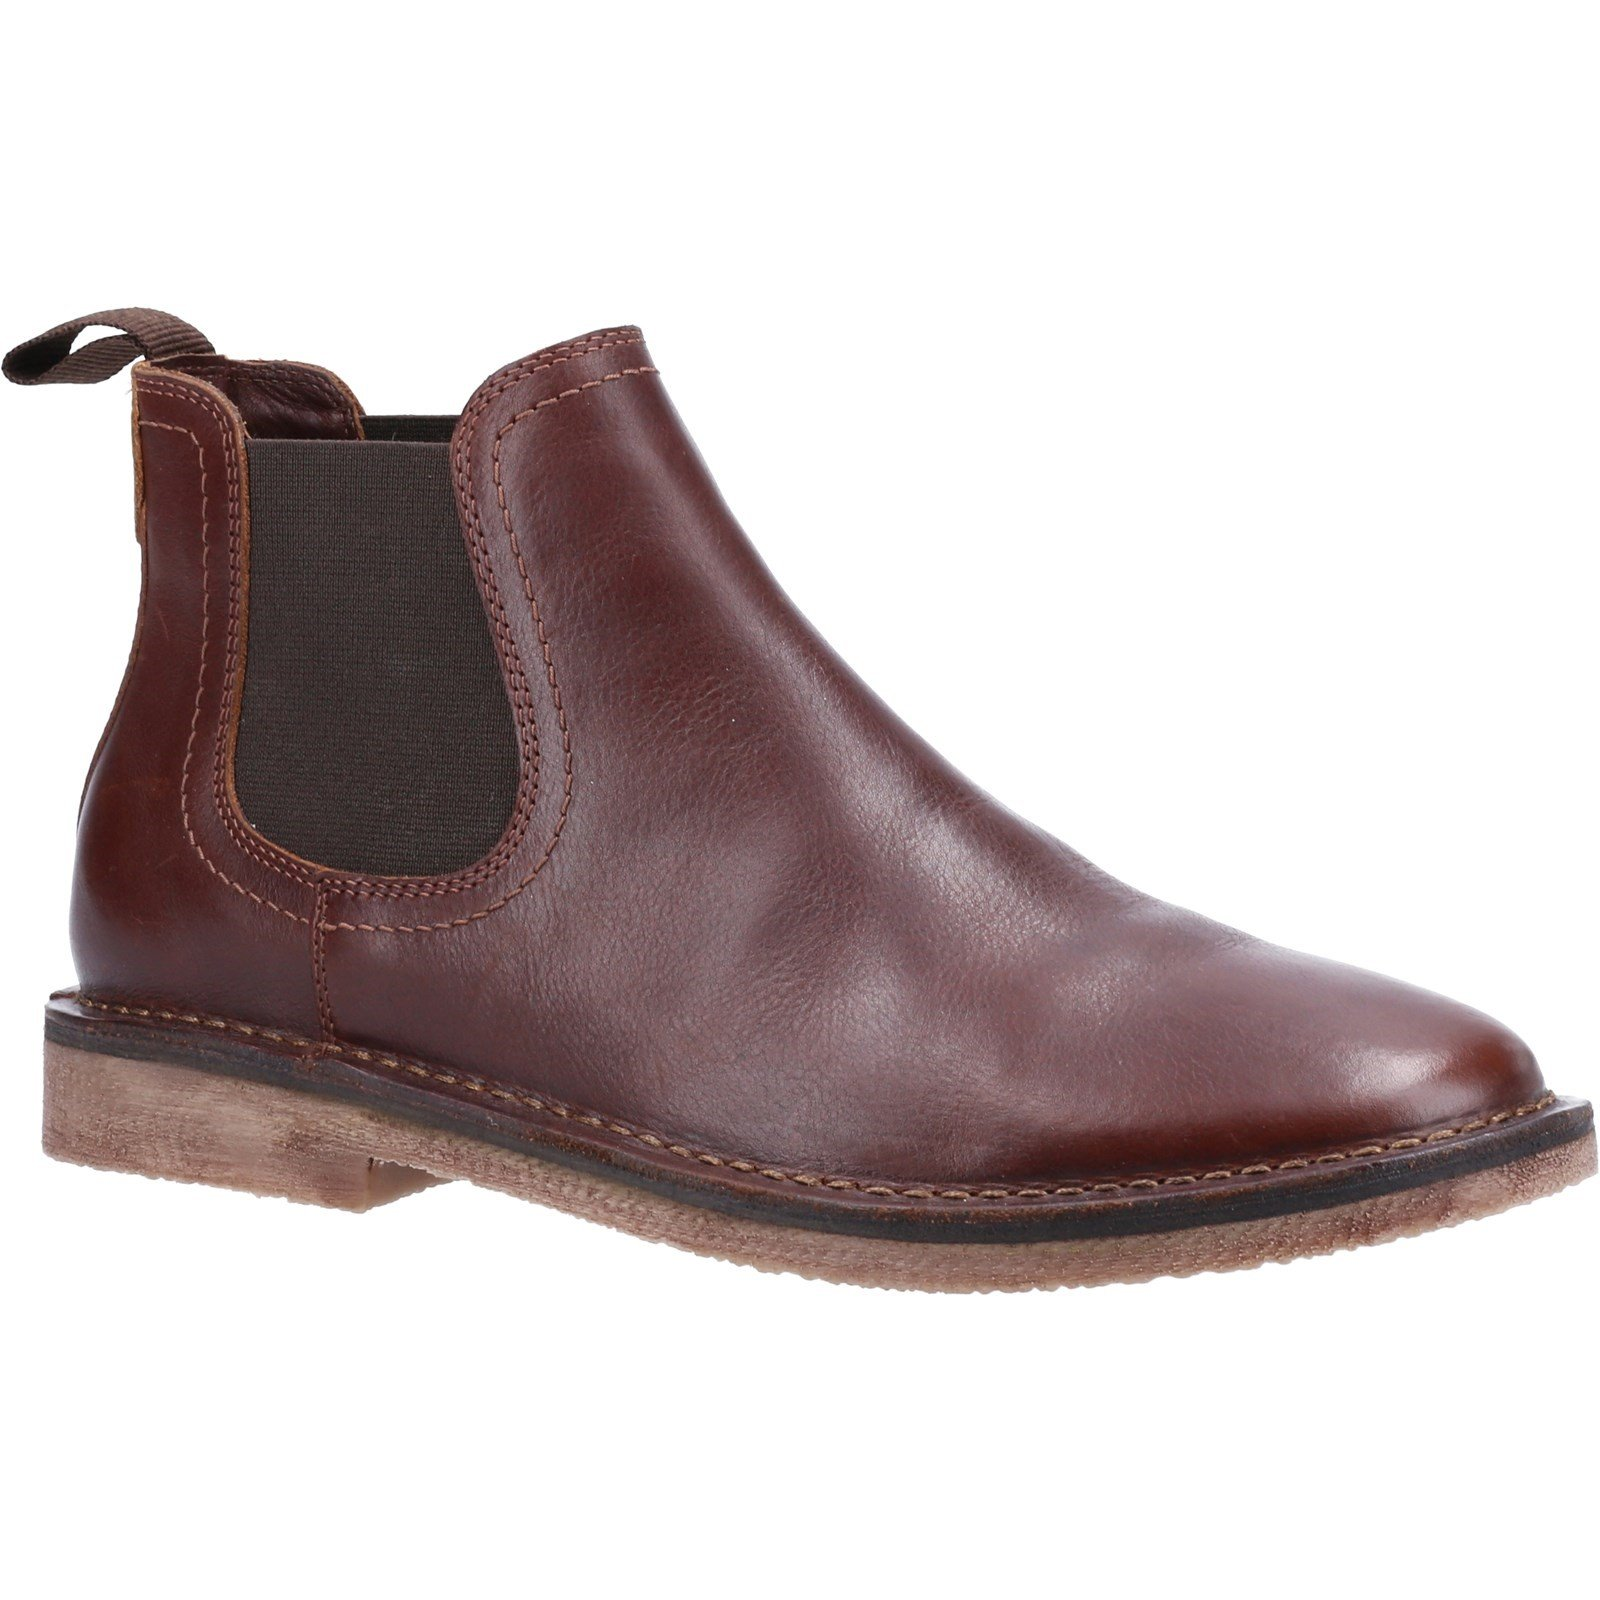 Hush Puppies Men's Shaun Leather Chelsea Boot Various Colours 32897 - Brown 10